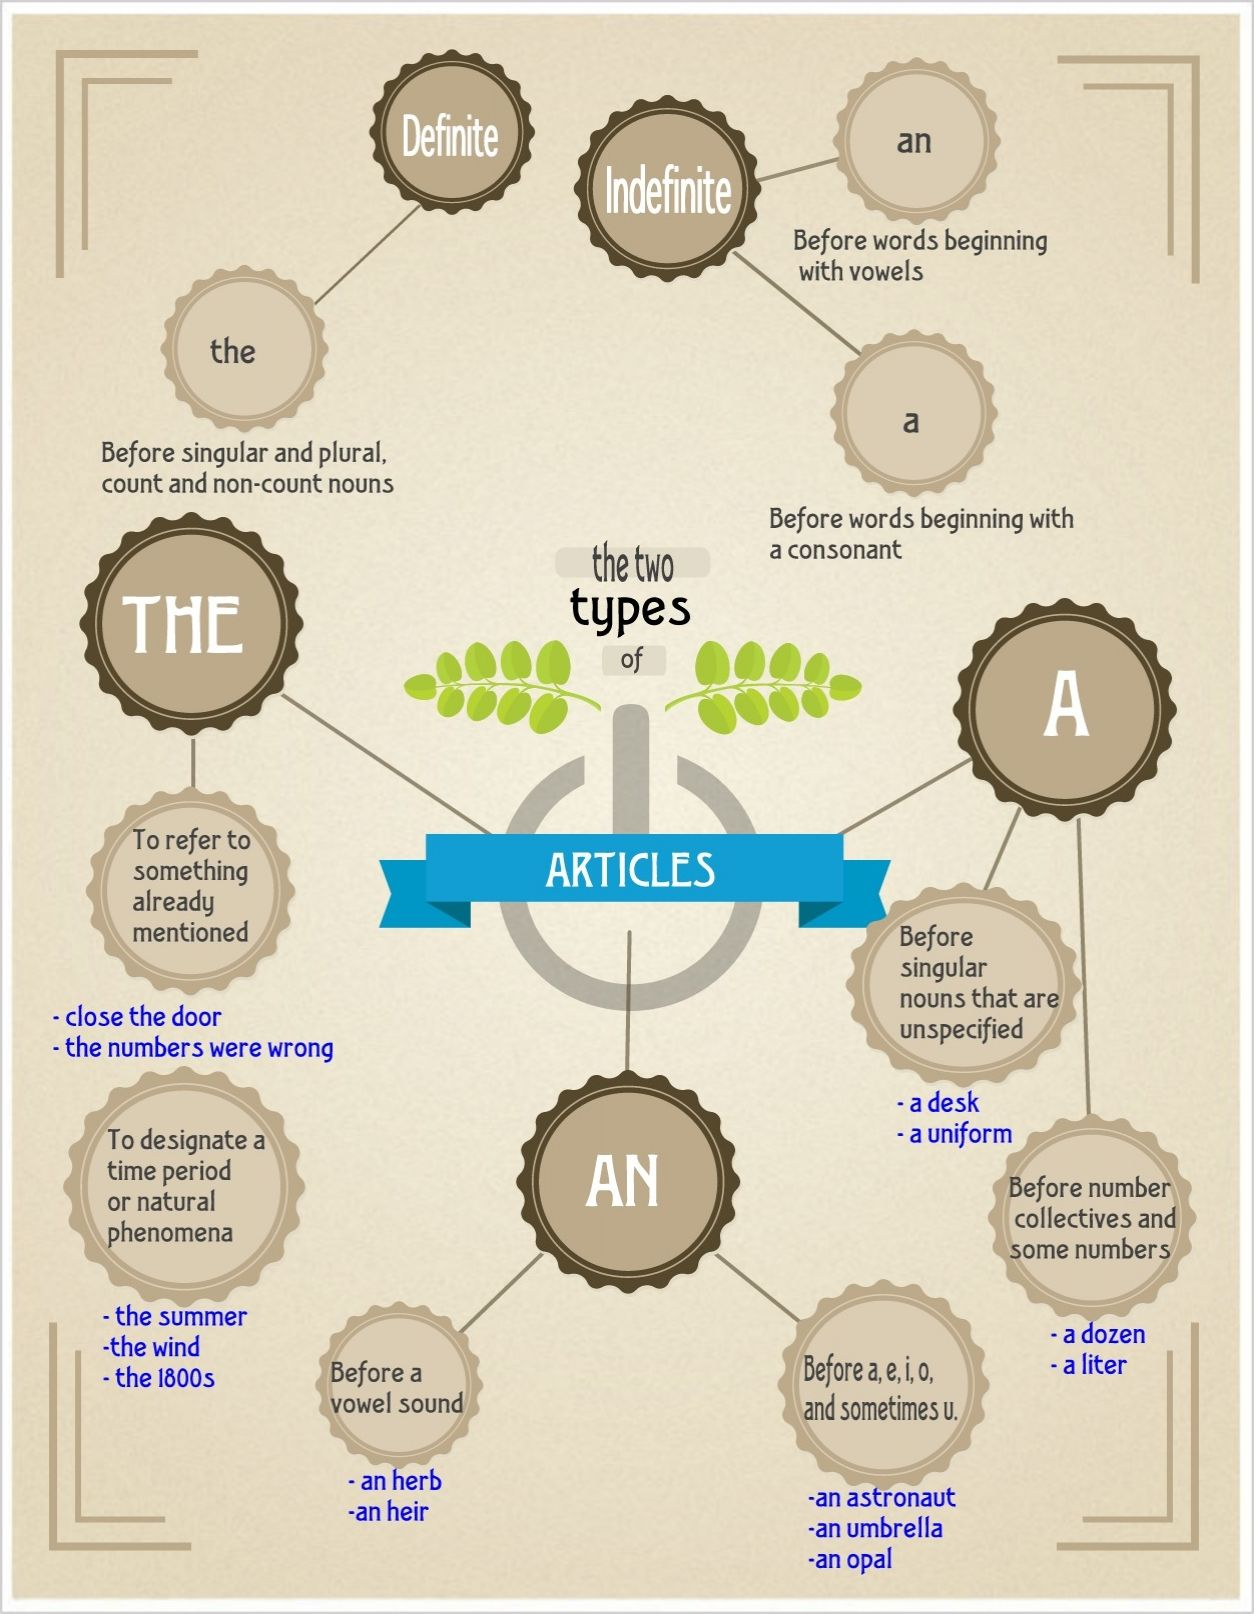 Indefinite And Definite Articles Infographic